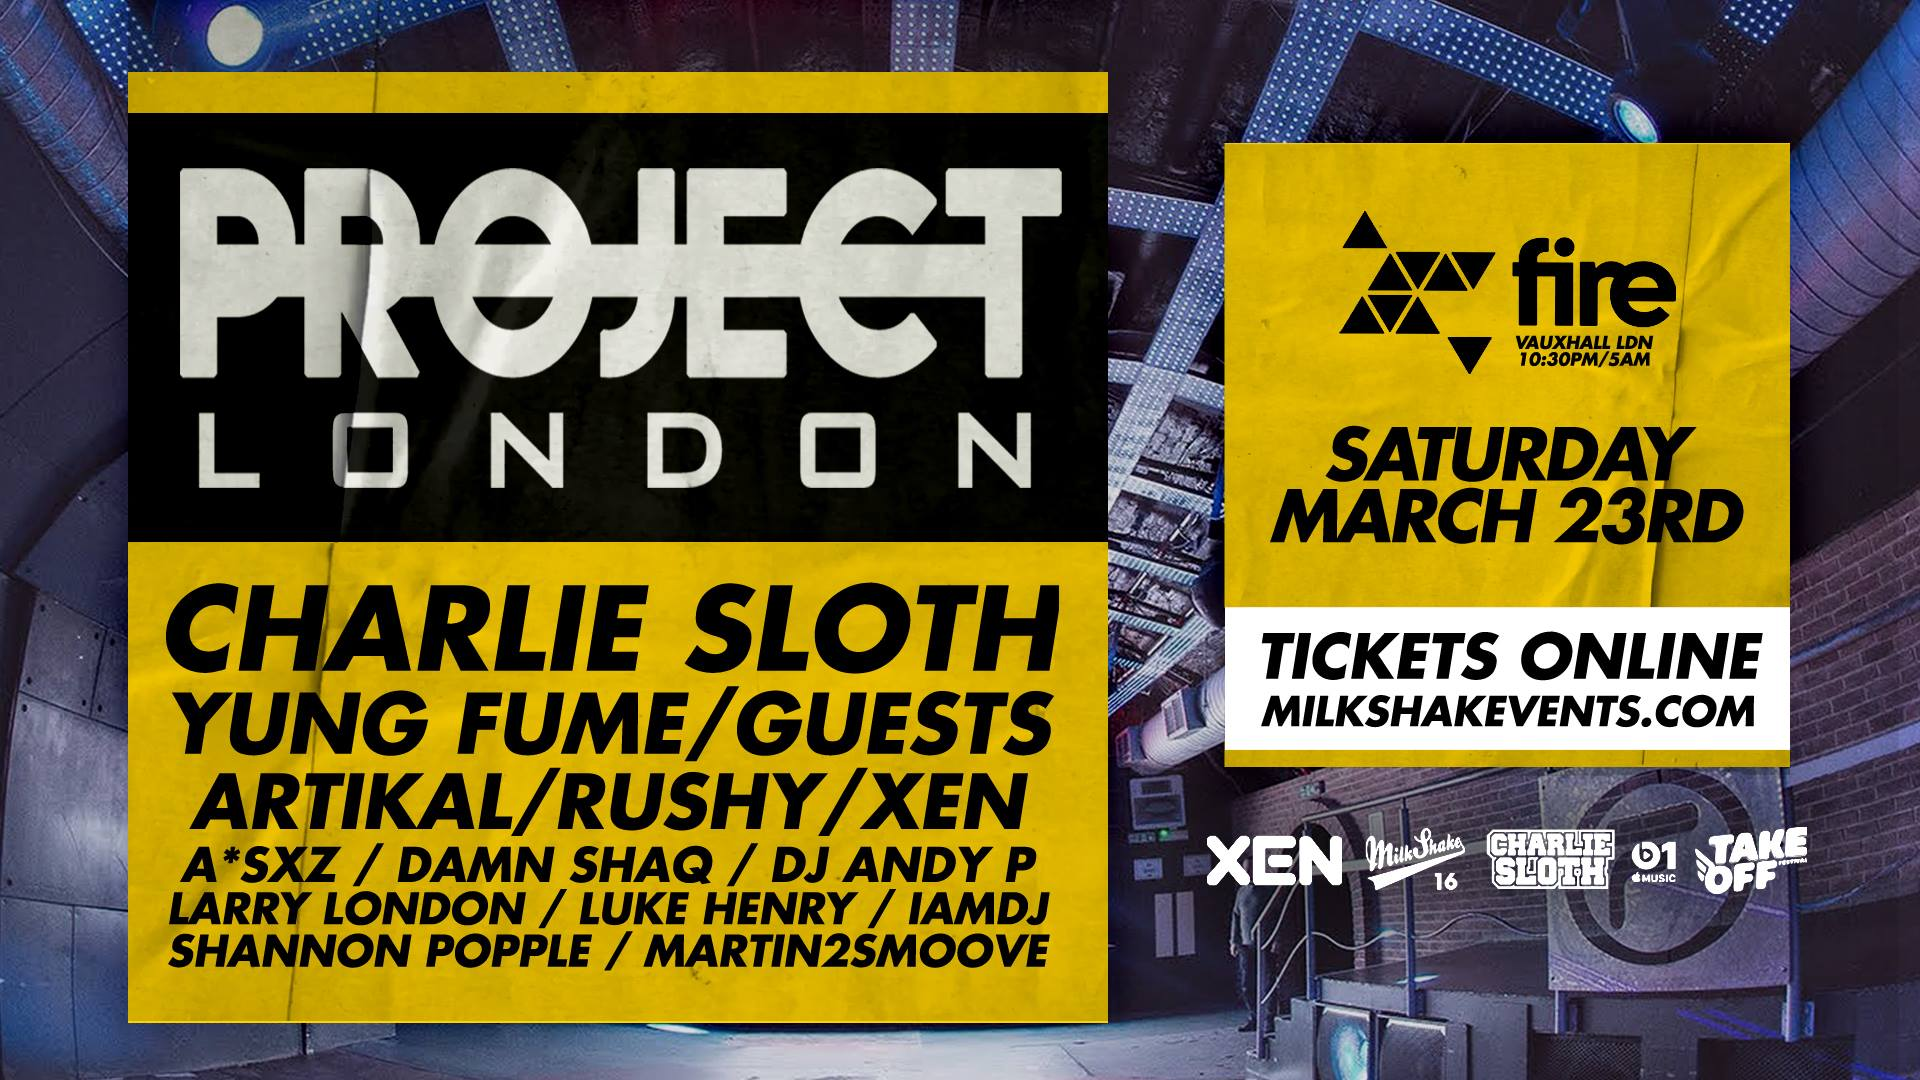 Project London ft: Charlie Sloth, Yung Fume, Rushy, Xen Sounds & More | Fire, Vauxhall